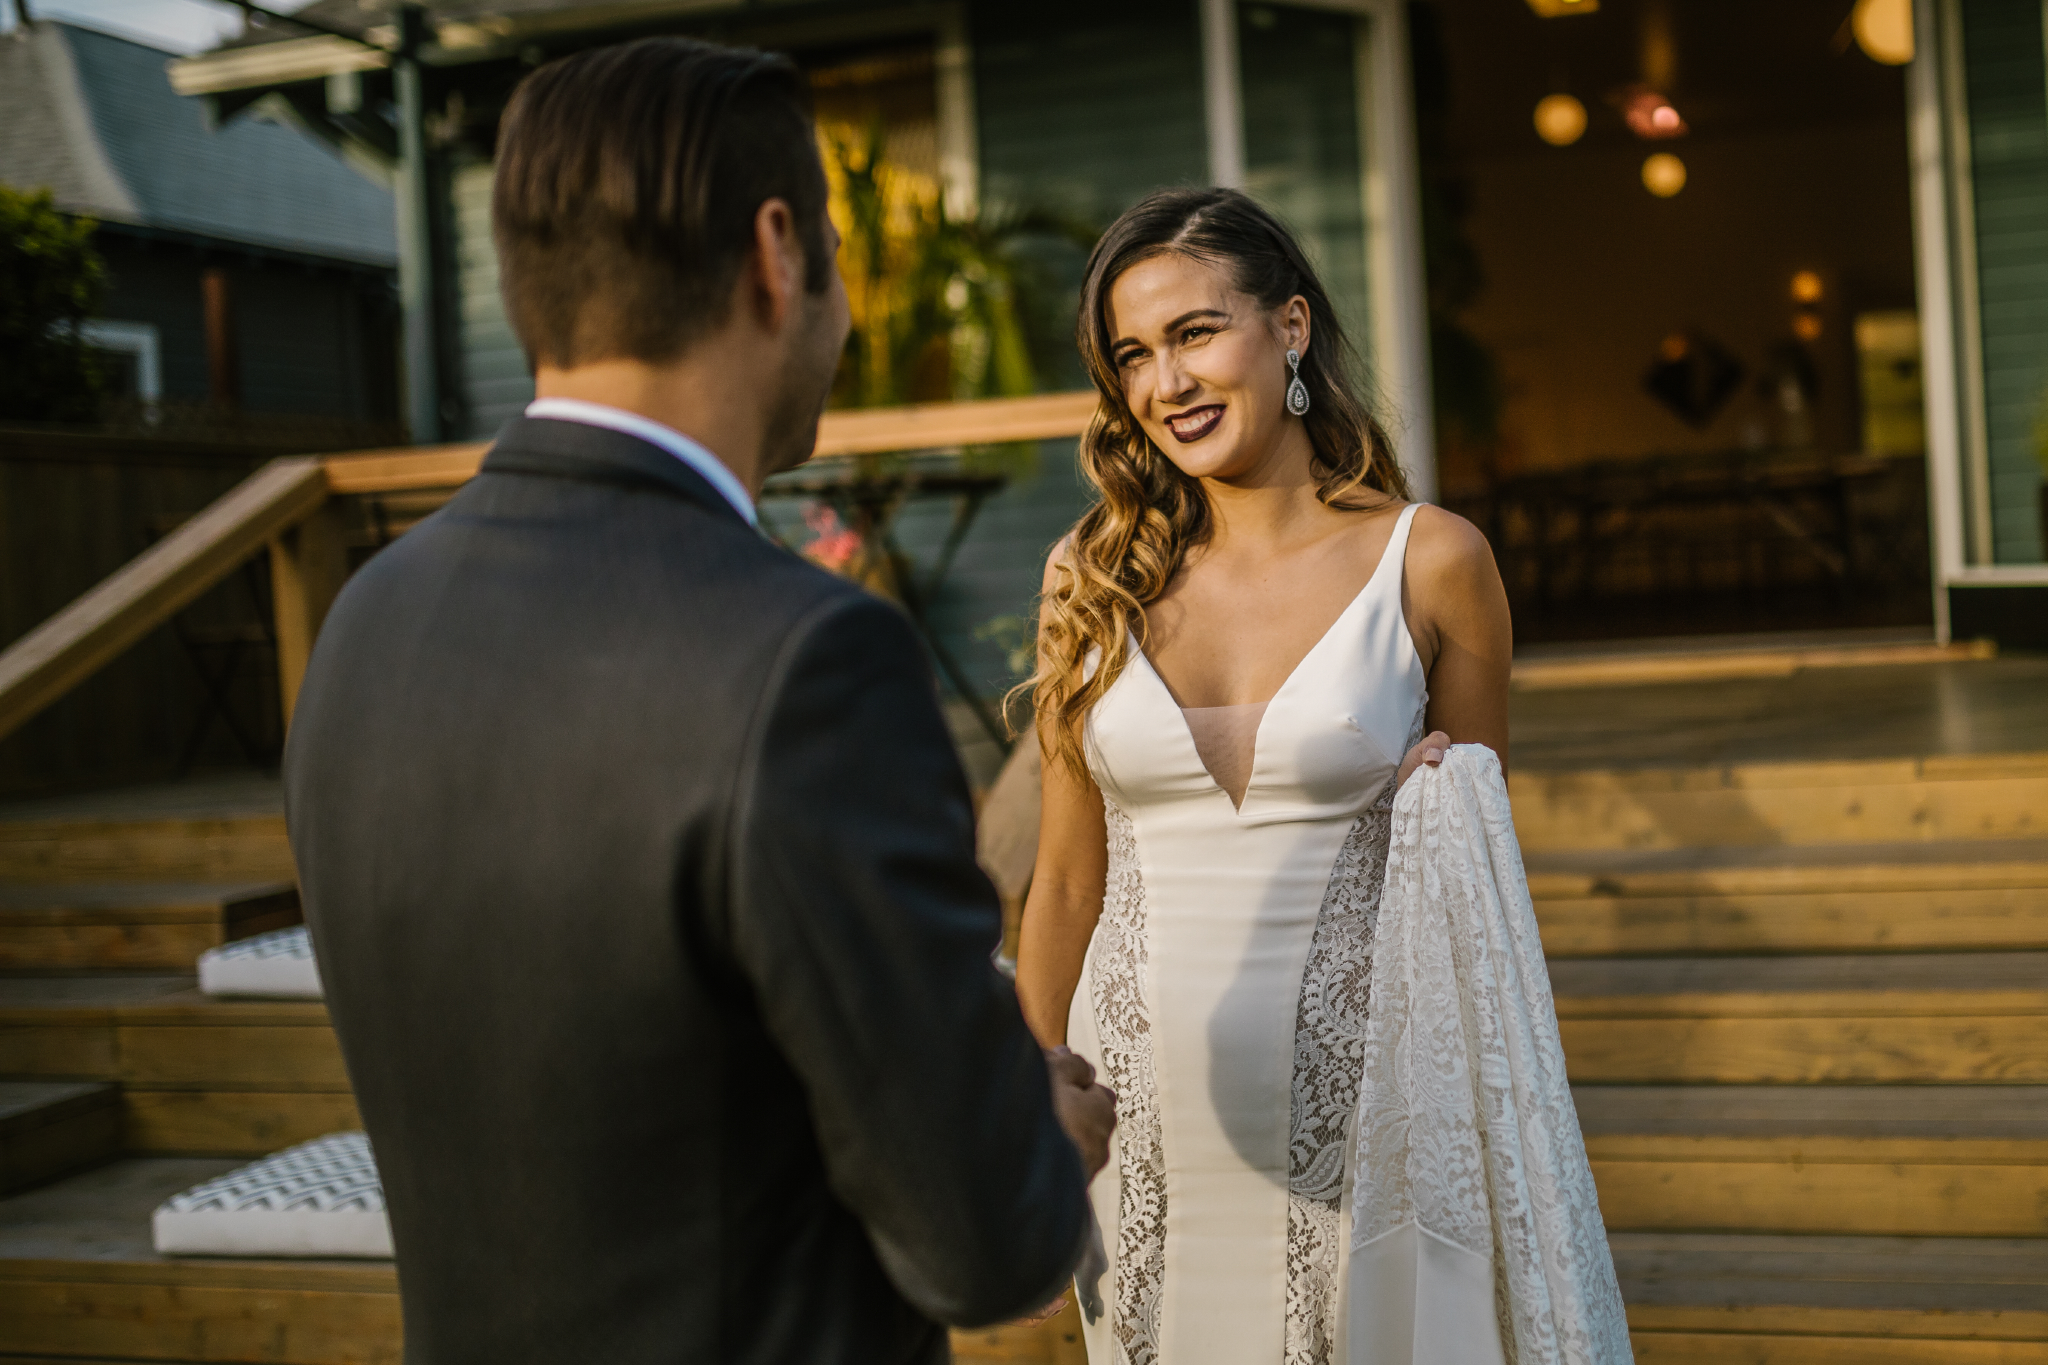 san diego wedding   photographer | bride meeting groom at foot of steps